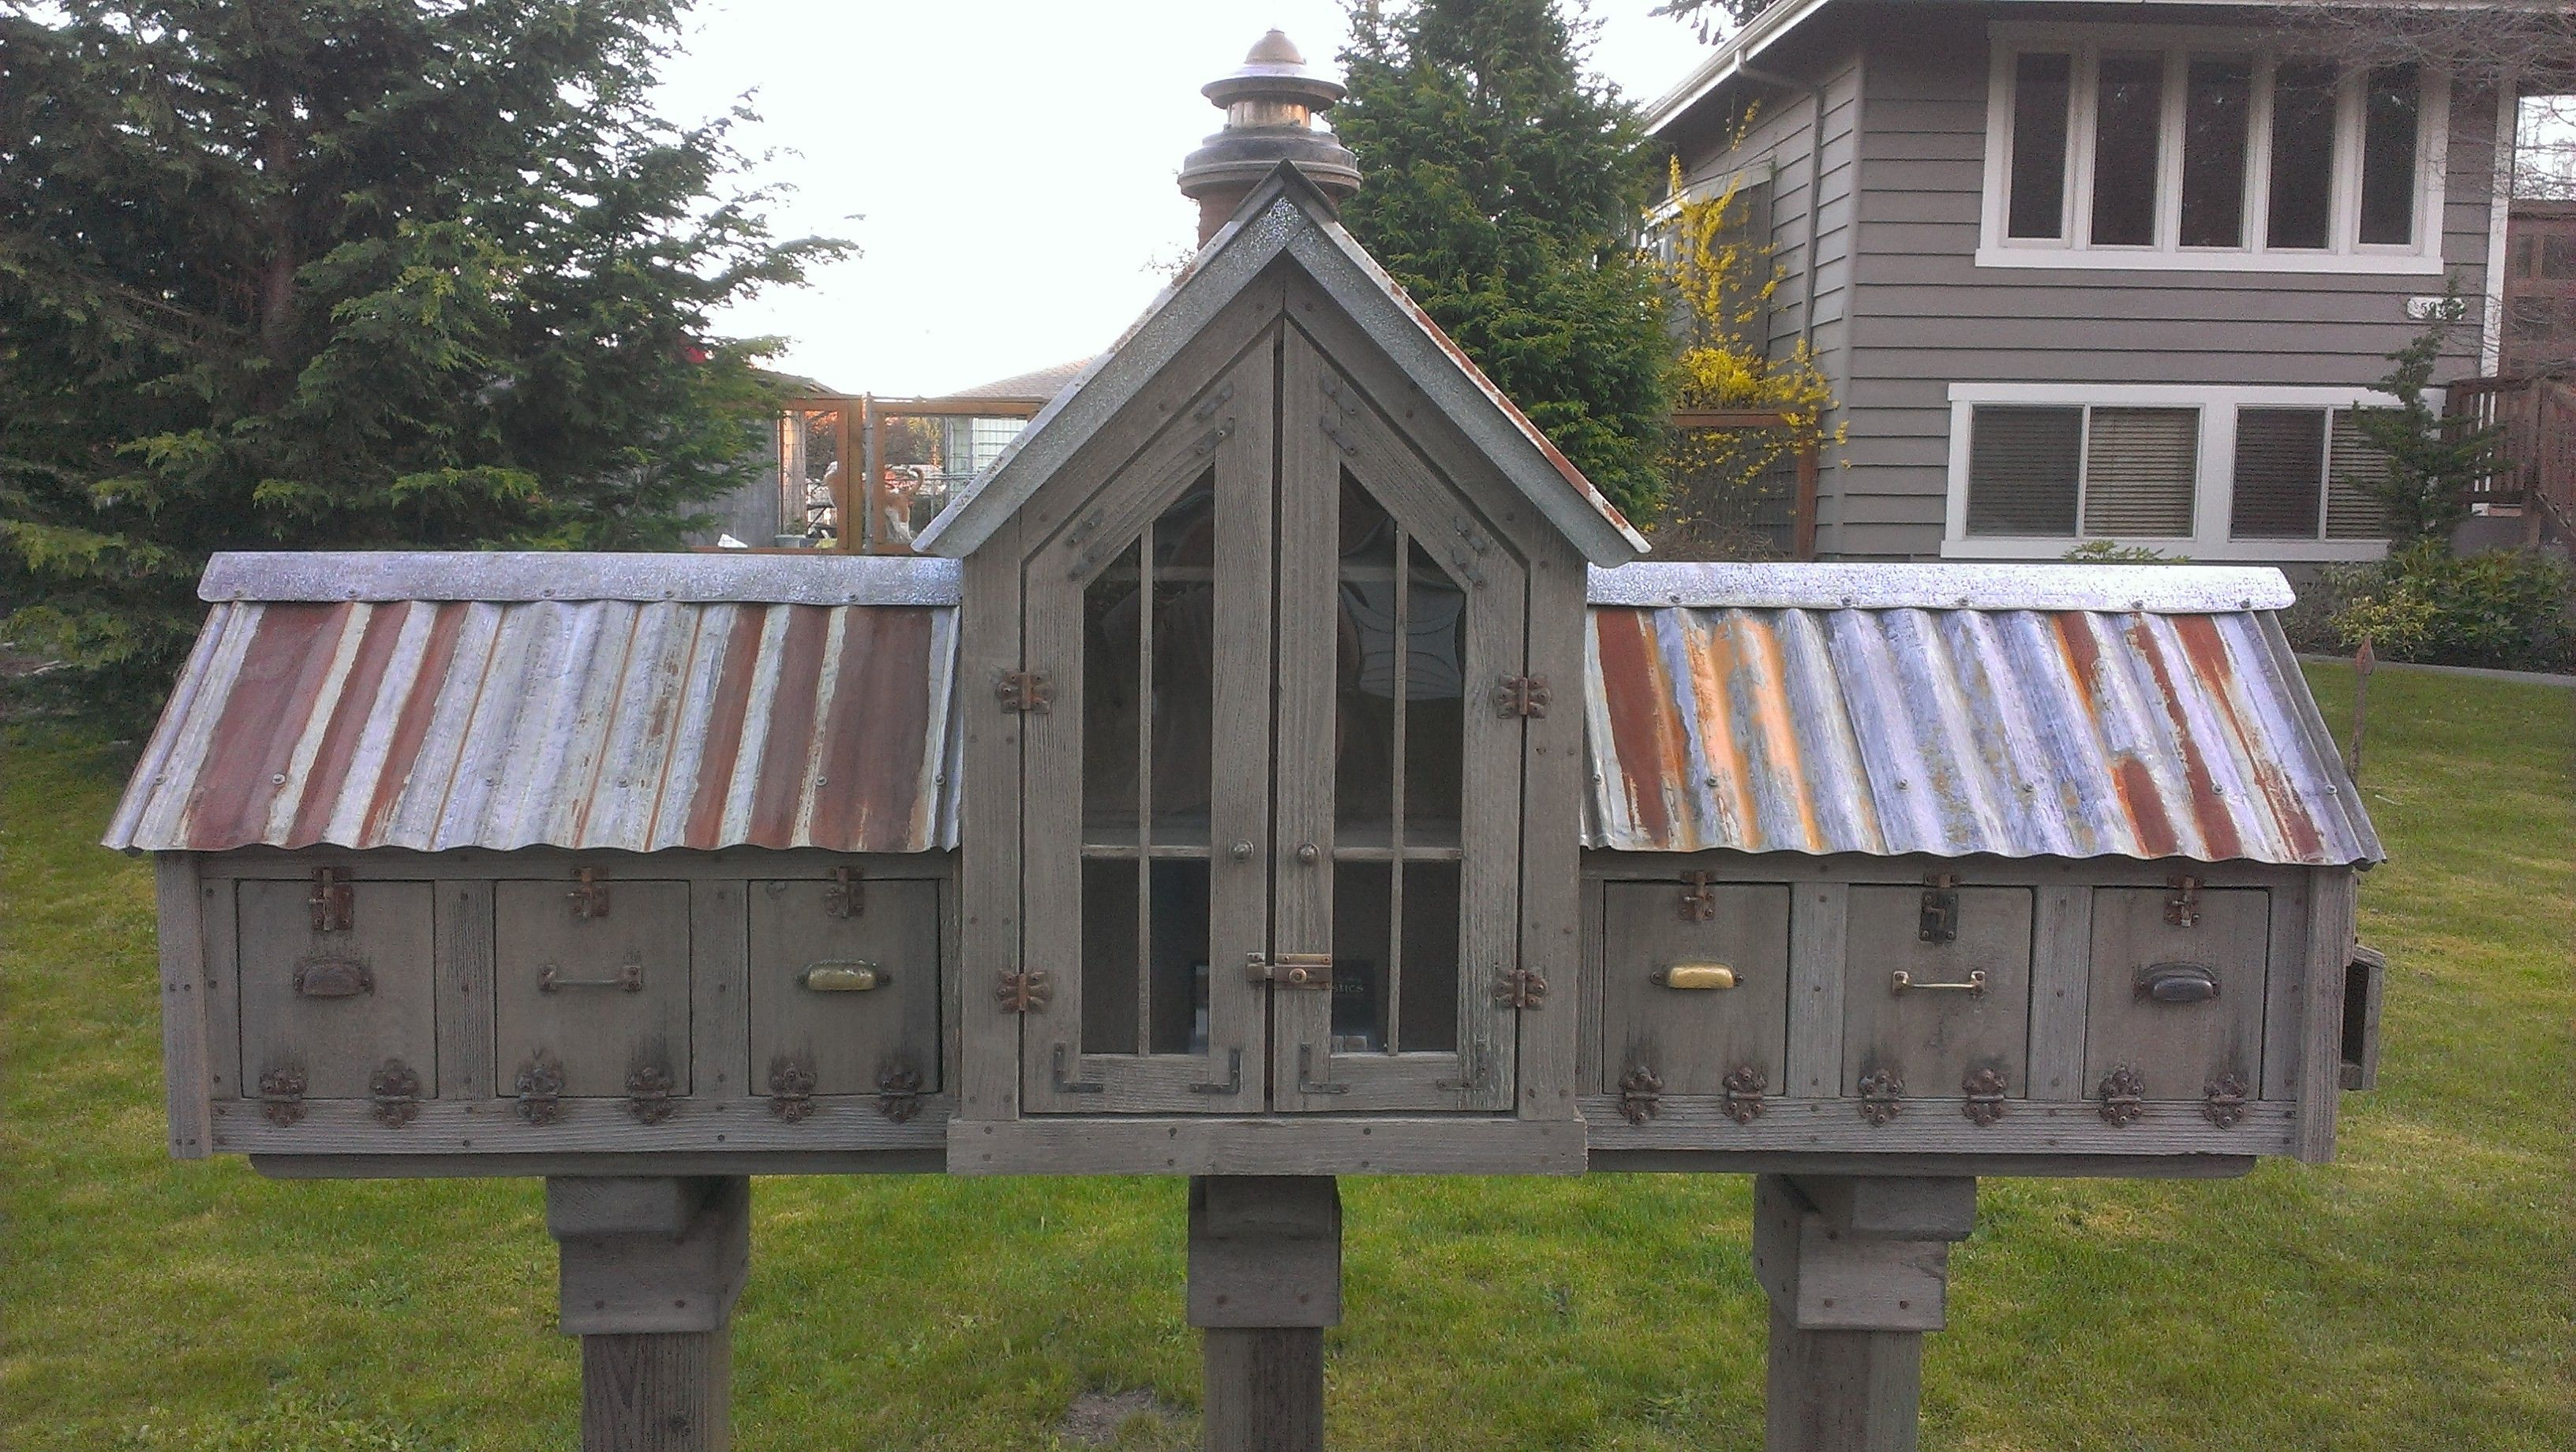 Bob Bowling Rustics Little free libraries, Butterfly